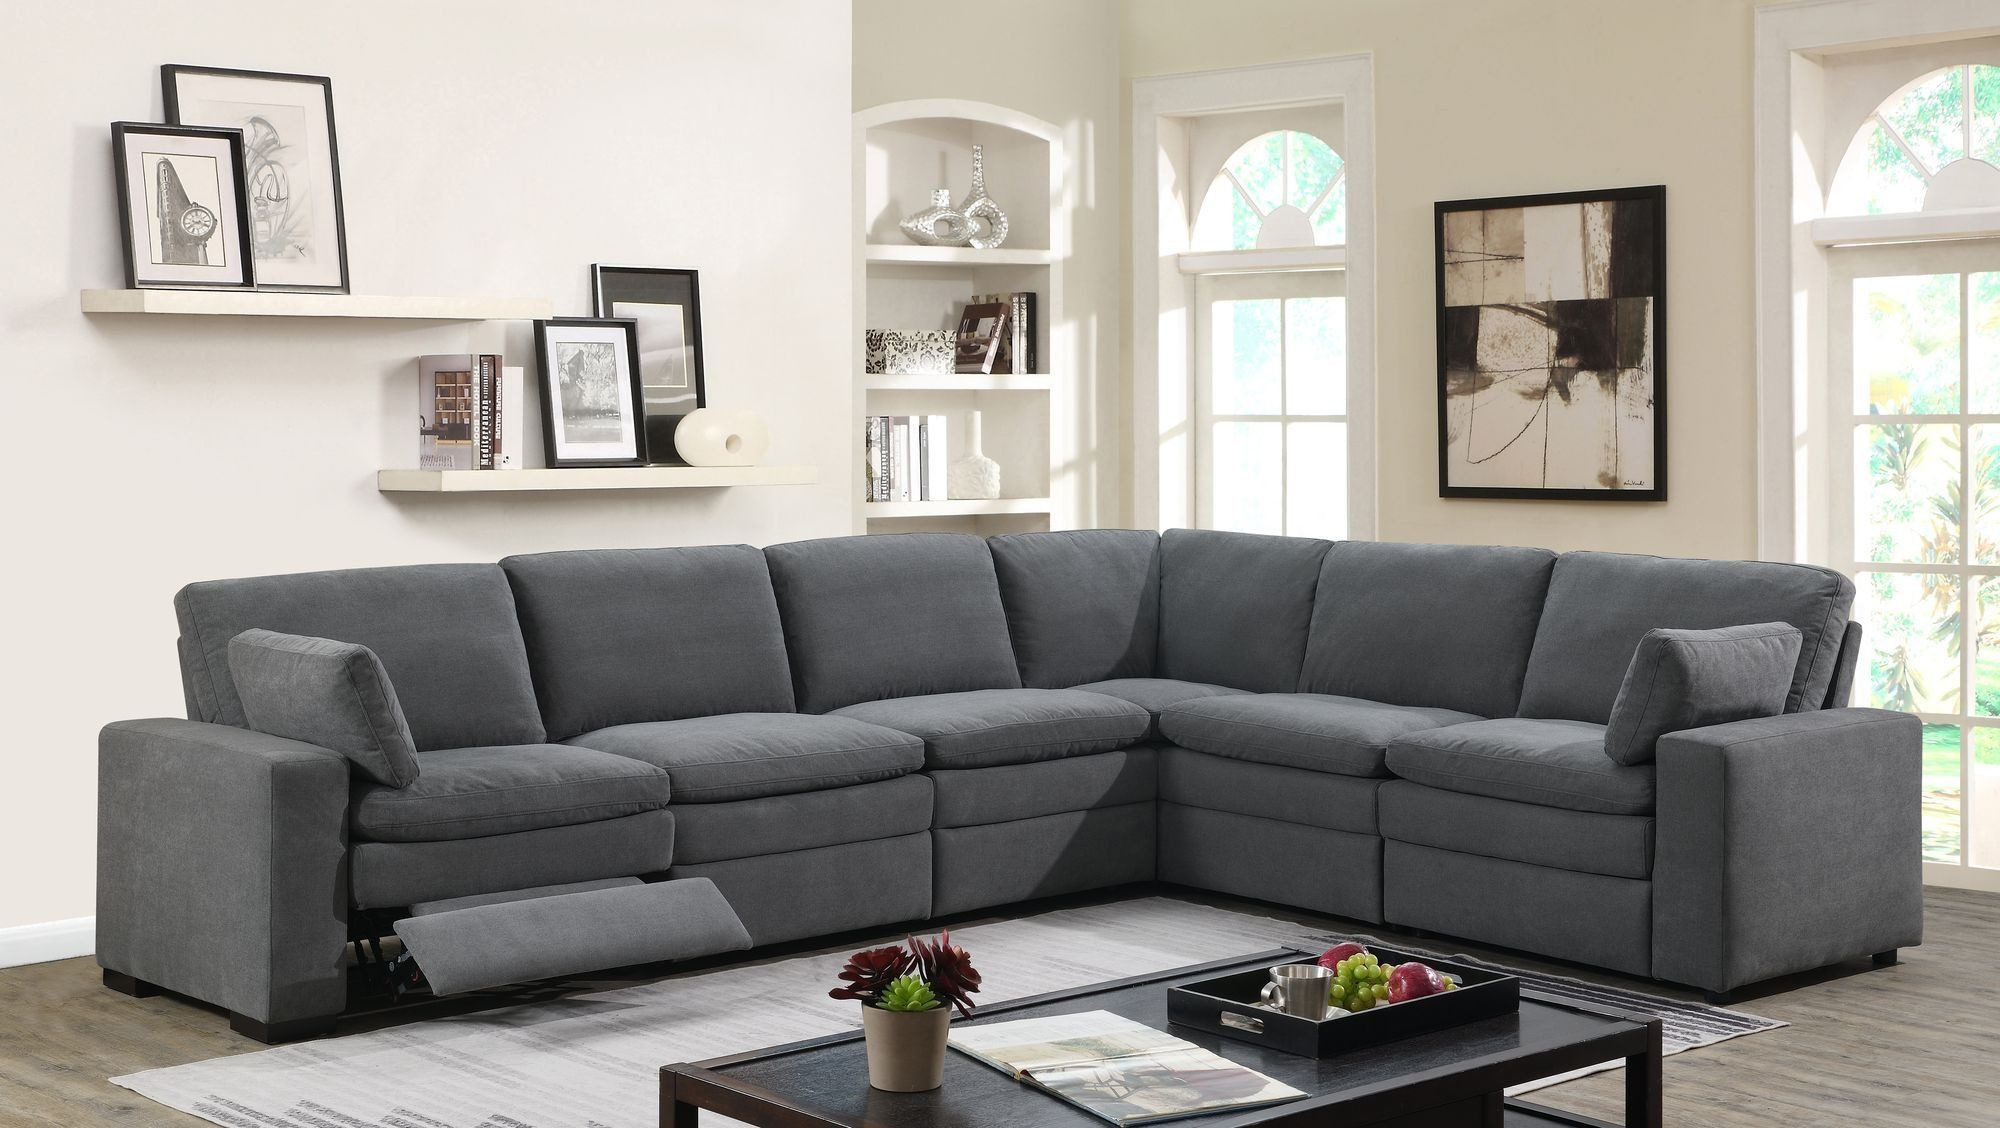 Charcoal gray 6 piece power reclining sectional sofa